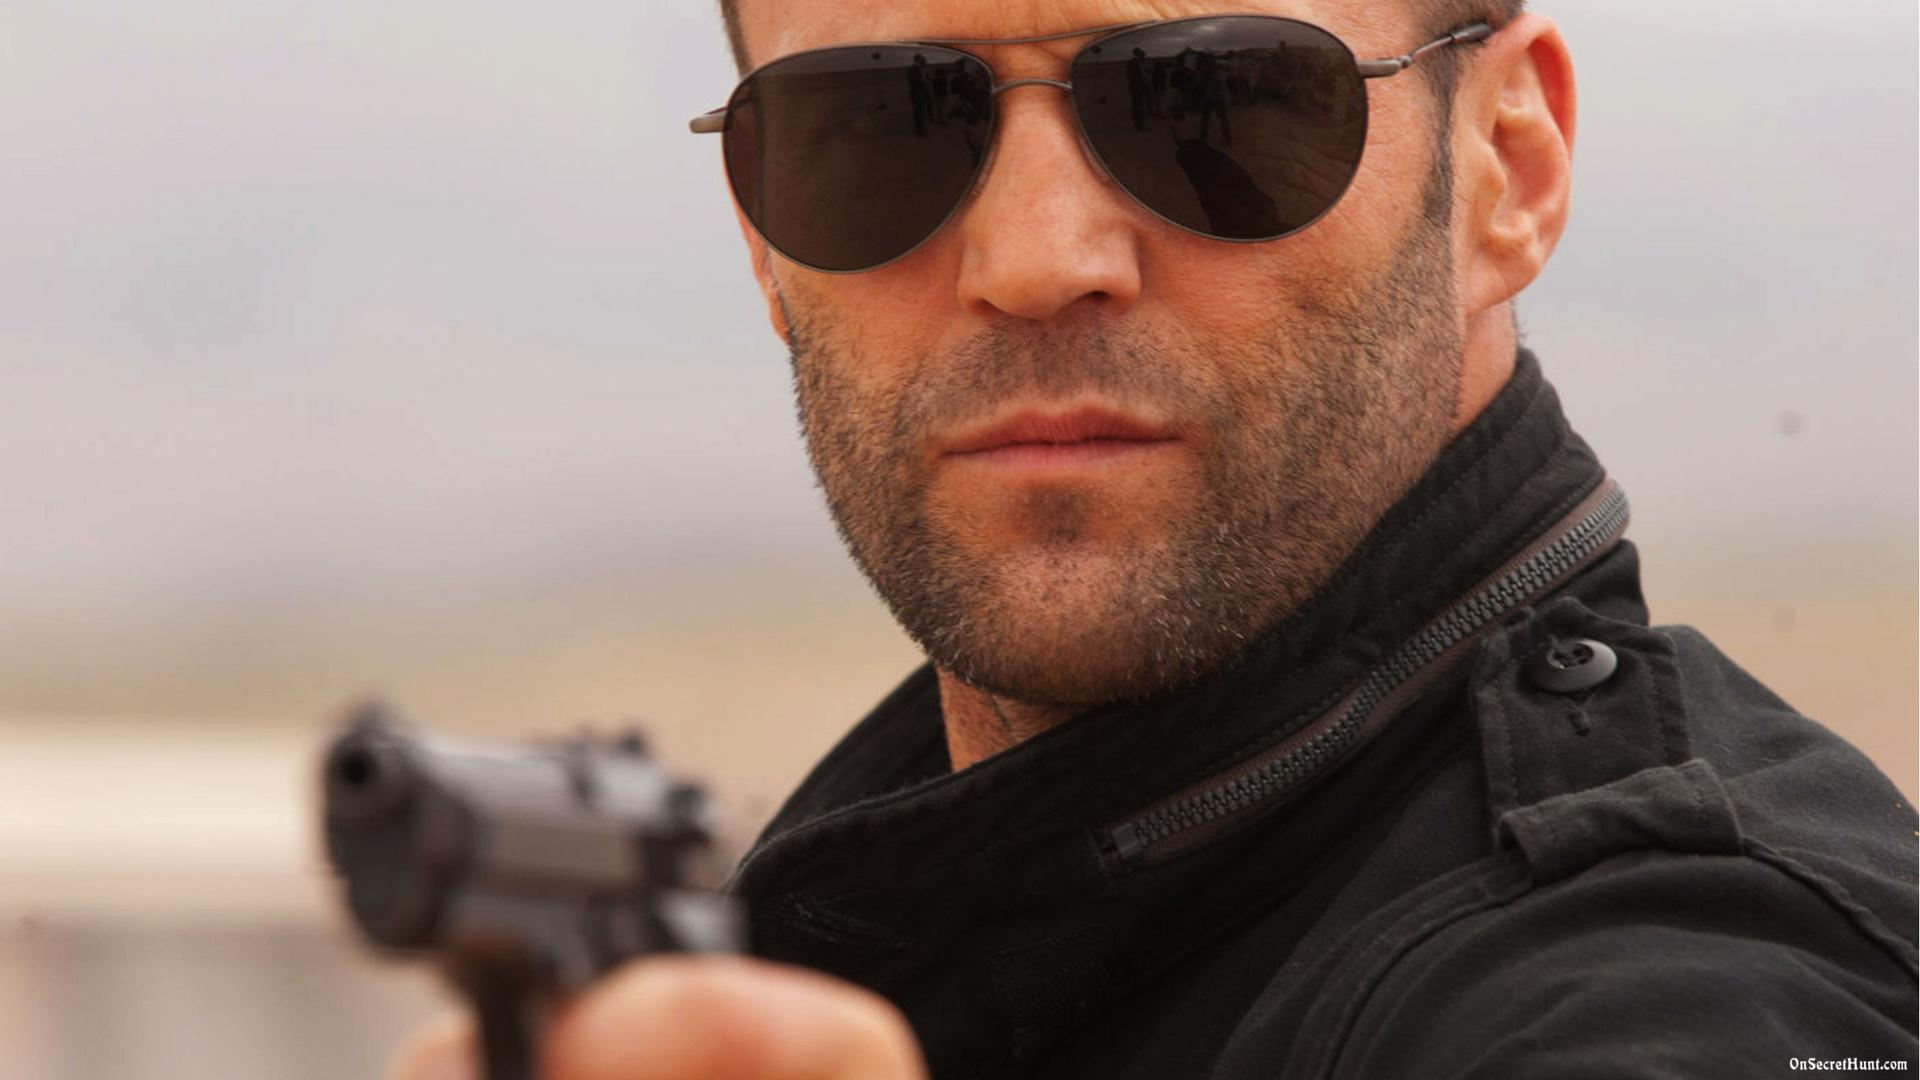 c1e7df497d Jason Statham Wallpapers High Resolution and Quality Download